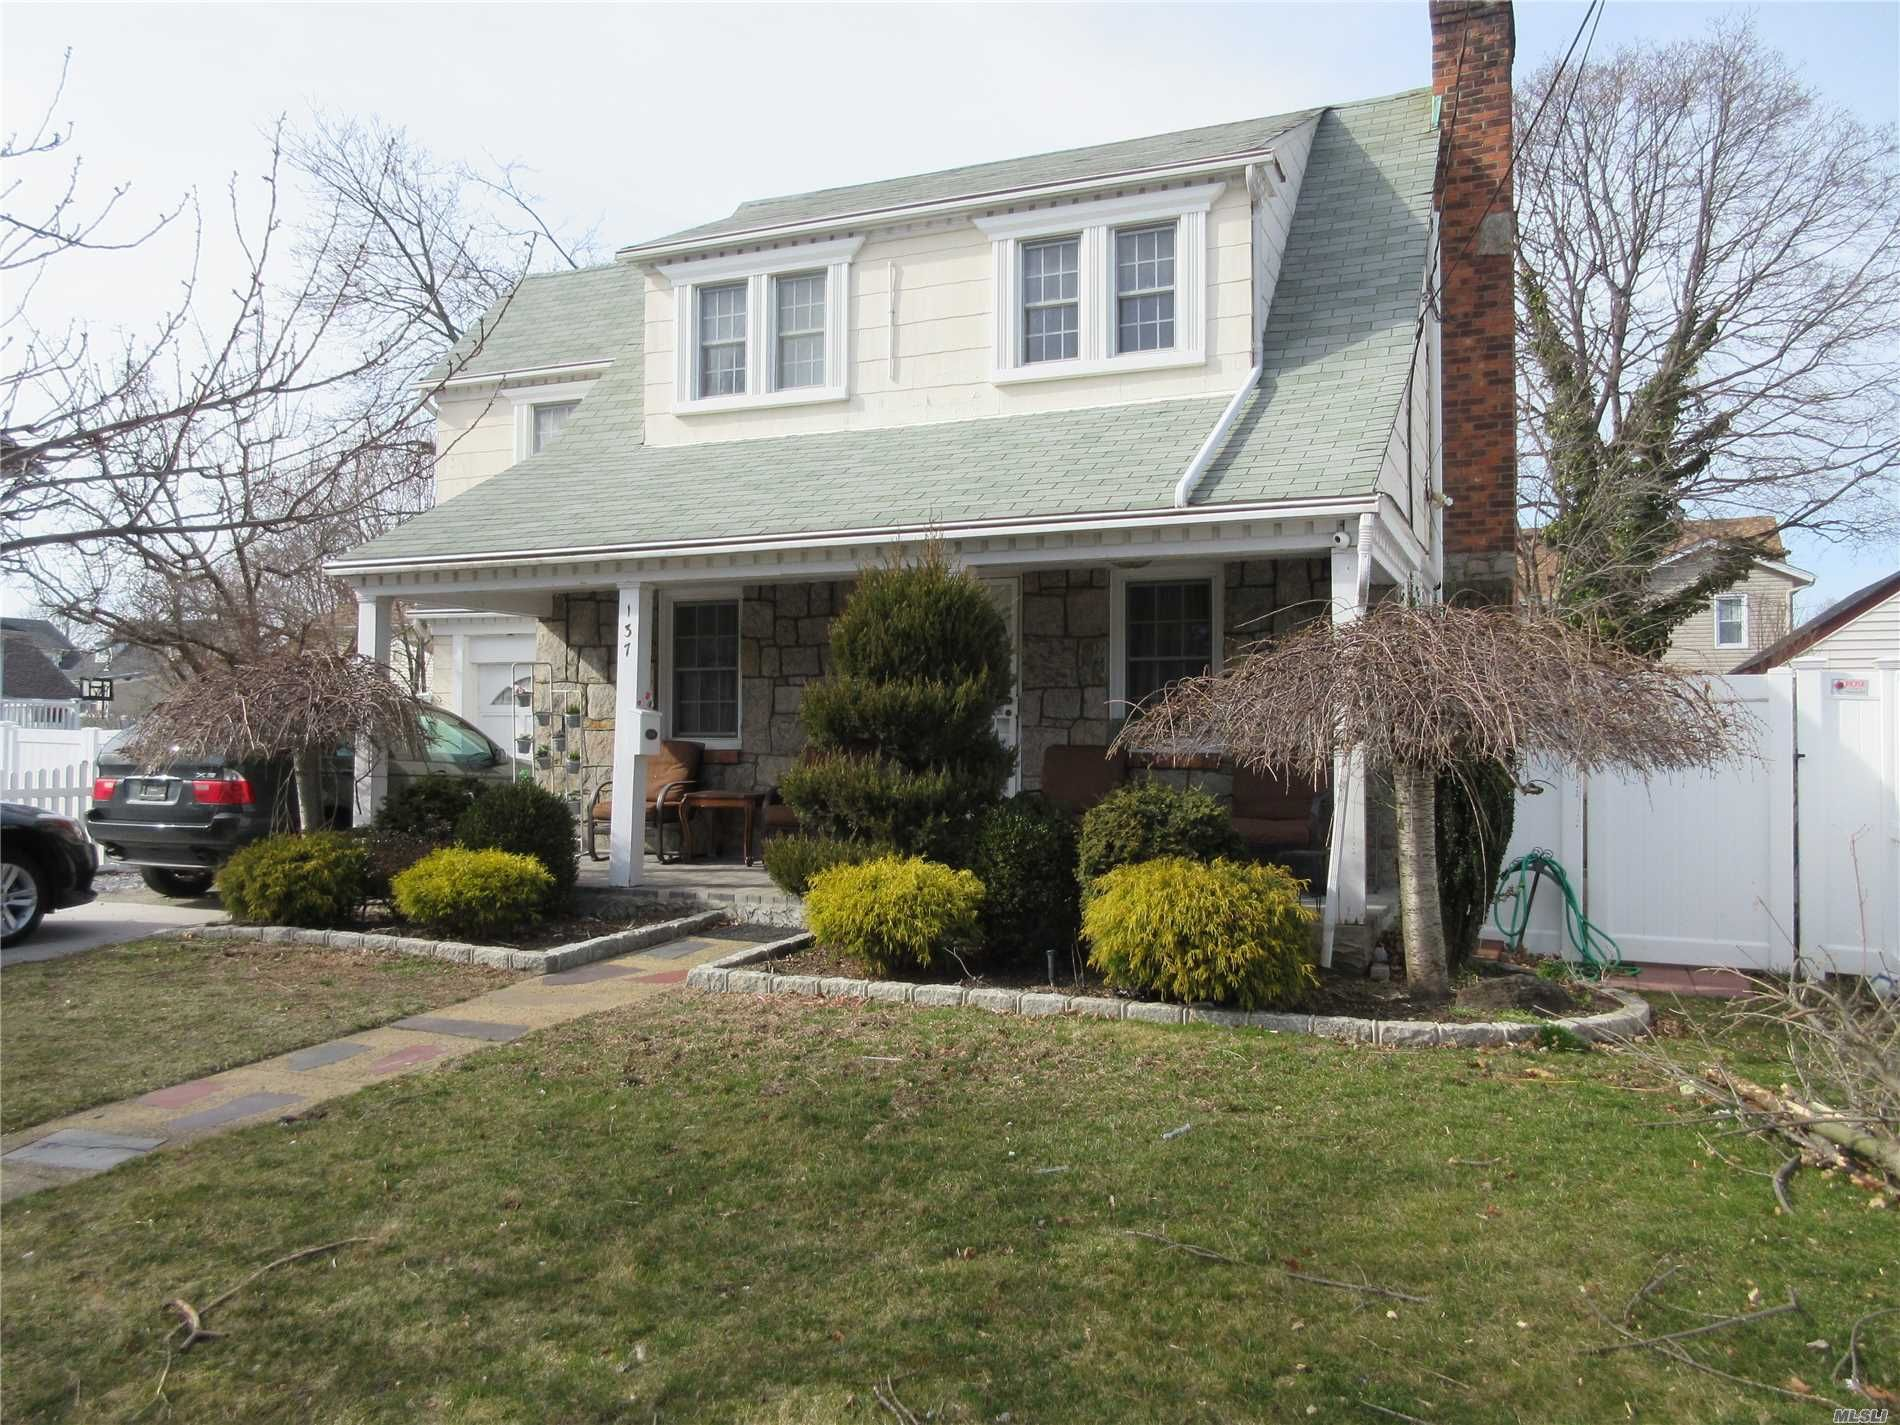 137 Dehnhoff Ave, Freeport, NY 11520 - 4 Bed, 2 Bath Single-Family Home -  MLS #P1341766 - 18 Photos | Trulia